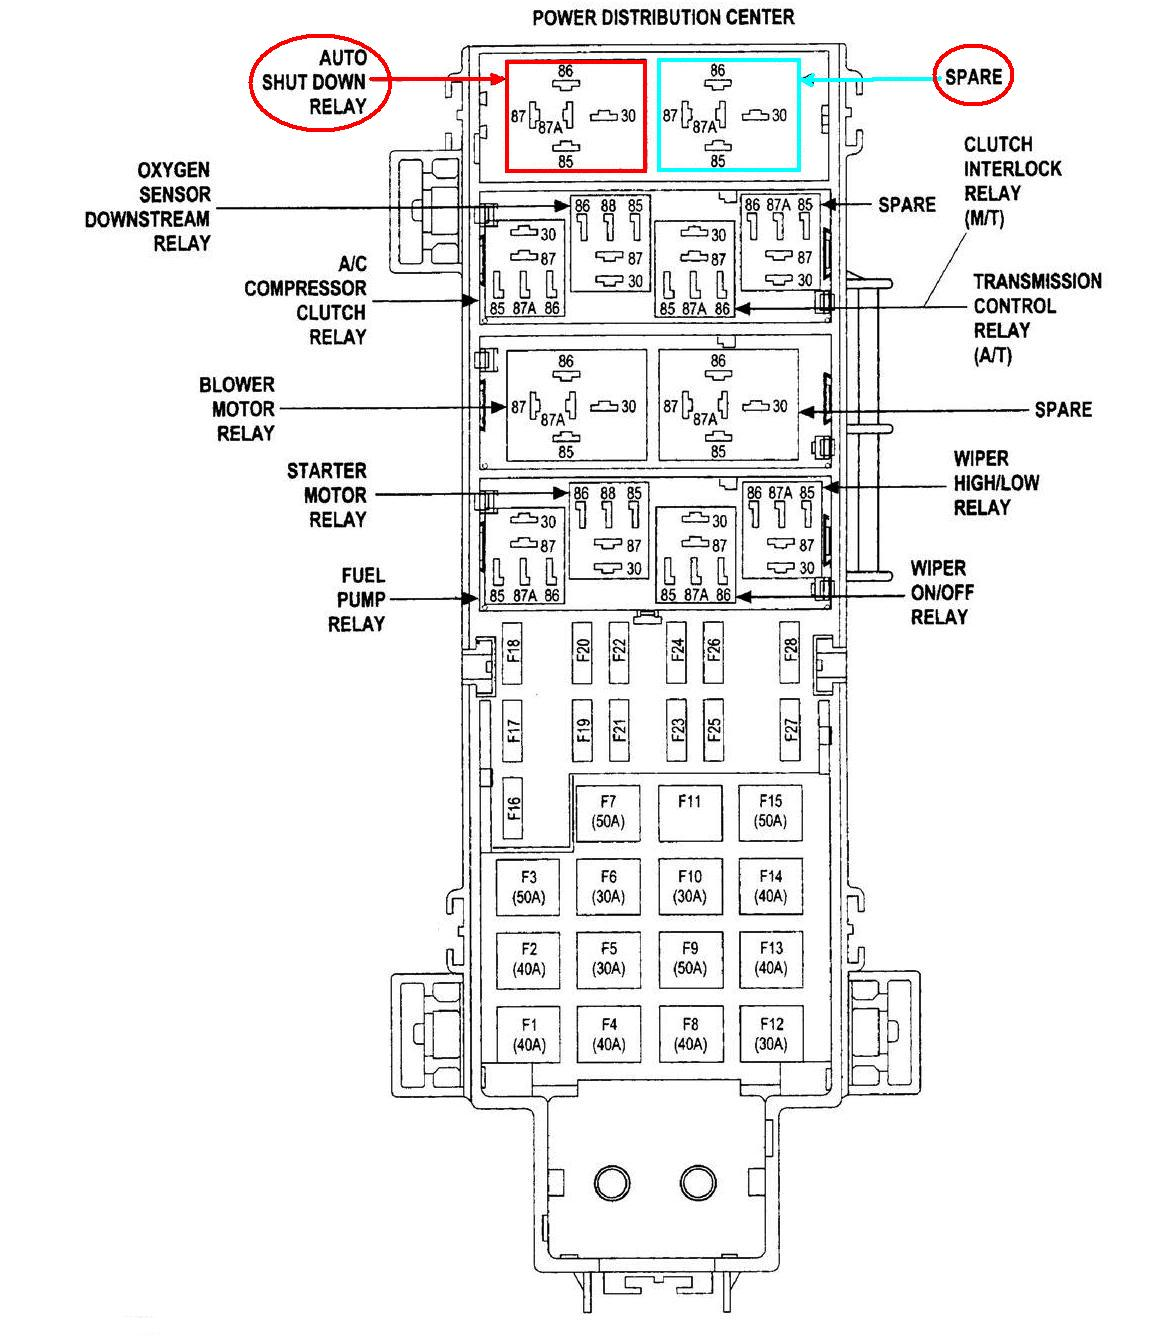 interior fuse box diagram jeepforum images 2000 cherokee fuse box engine diagram justanswercomjeep4h7es 2002 jeep liberty